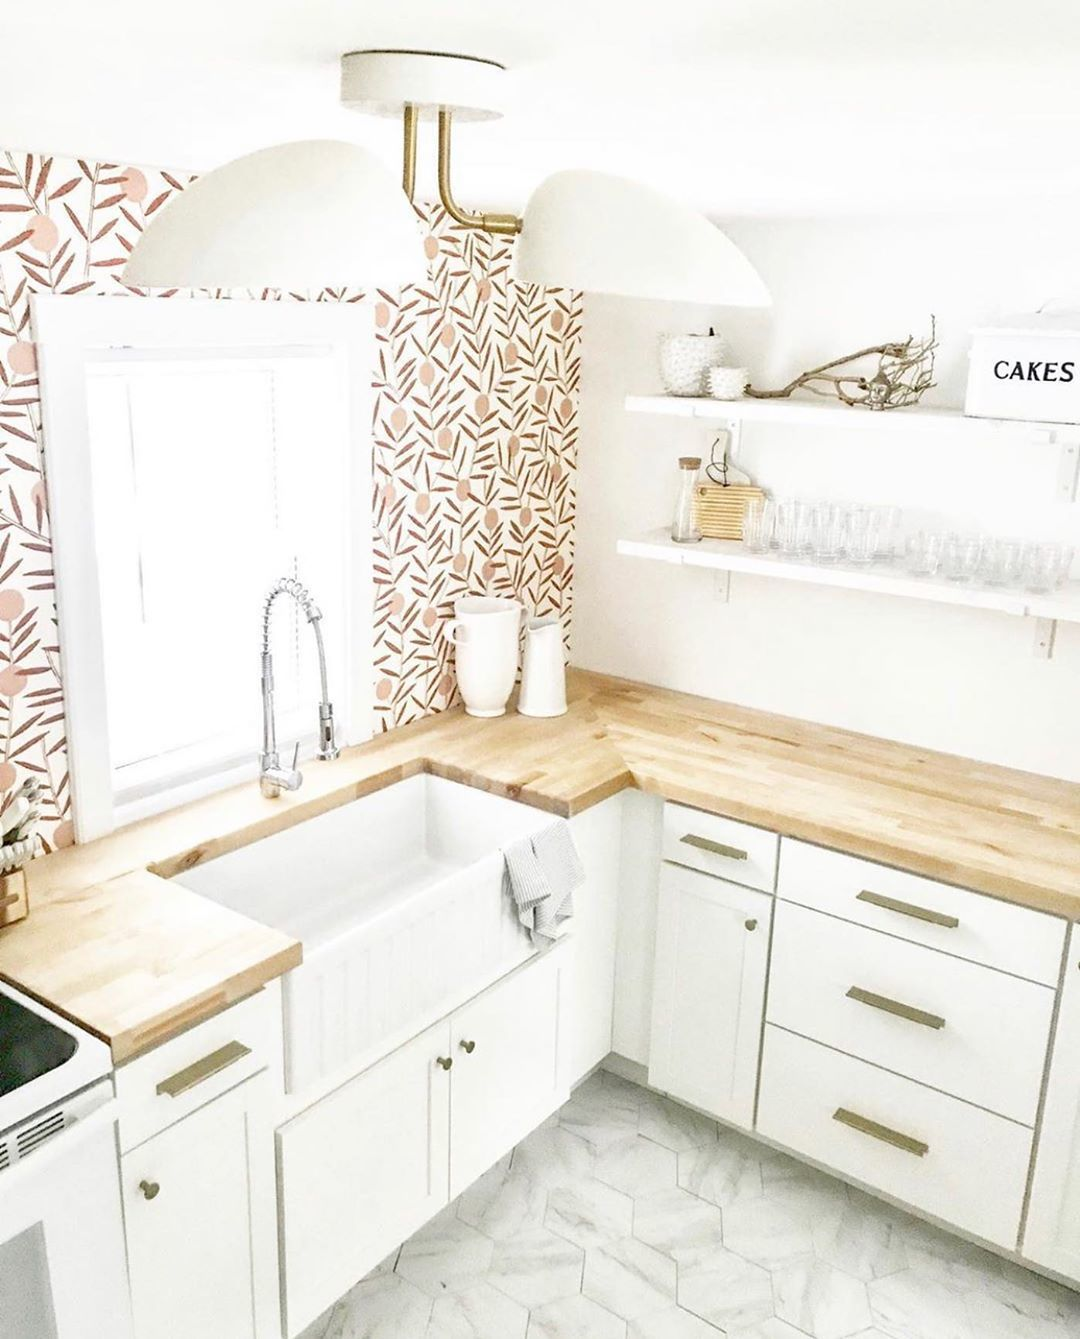 Our Favorite Patterns for the Kitchen | Bloom Dusty Rose wallpaper | Emily Isabella | Hygge & West